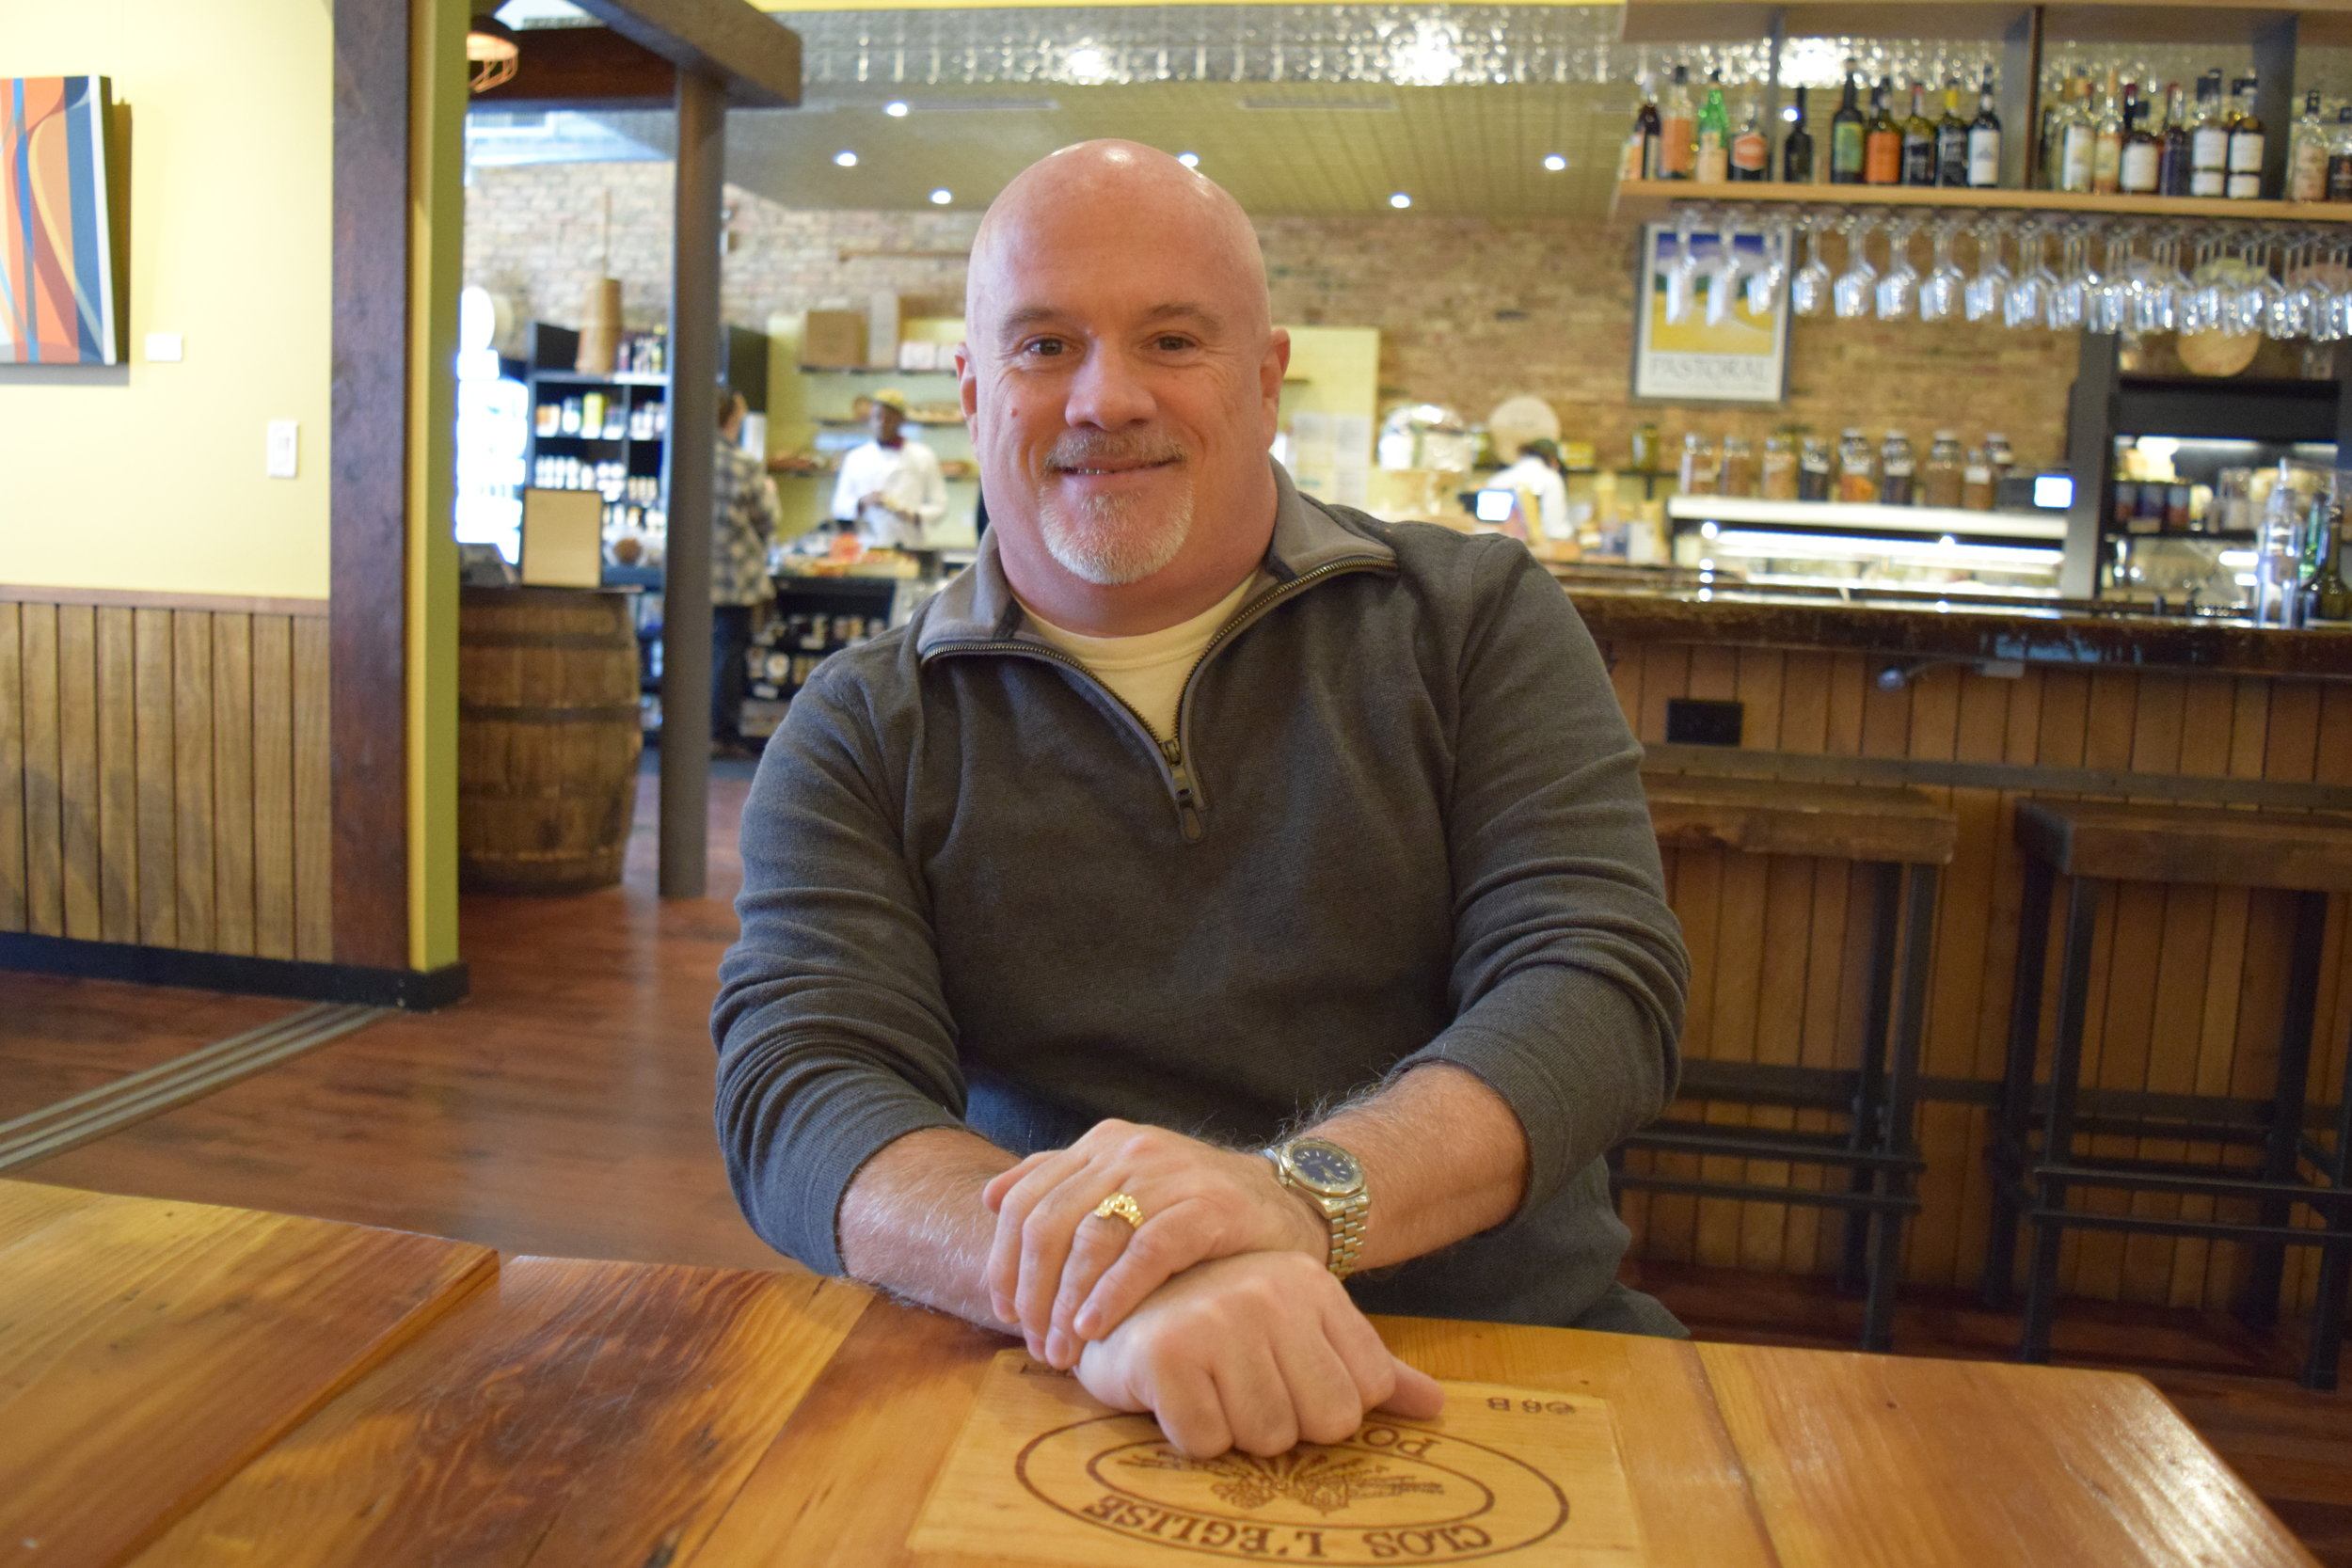 "Greg O'Neil   Co-owner/Co-founder, Pastoral/Appellation    ""Andersonville is sort of like a small town in the middle of a big city, which has the dual benefit of knowing people, the intimacy, the small town feel, people knowing your name, but also having a lot of the resources and interesting cultural stuff that you get in a big city like Chicago…What we love is we're across the street from the Swedish American Museum.  When people come into the museum, they sometimes want to buy Swedish foodstuffs.  They send them over to us. We send them over to them.  Next door we have one of the oldest Swedish bars in the city, and we send people over there.  There's a great camaraderie, and people support local business, which is really important.  Independent businesses thrive in Andersonville."""